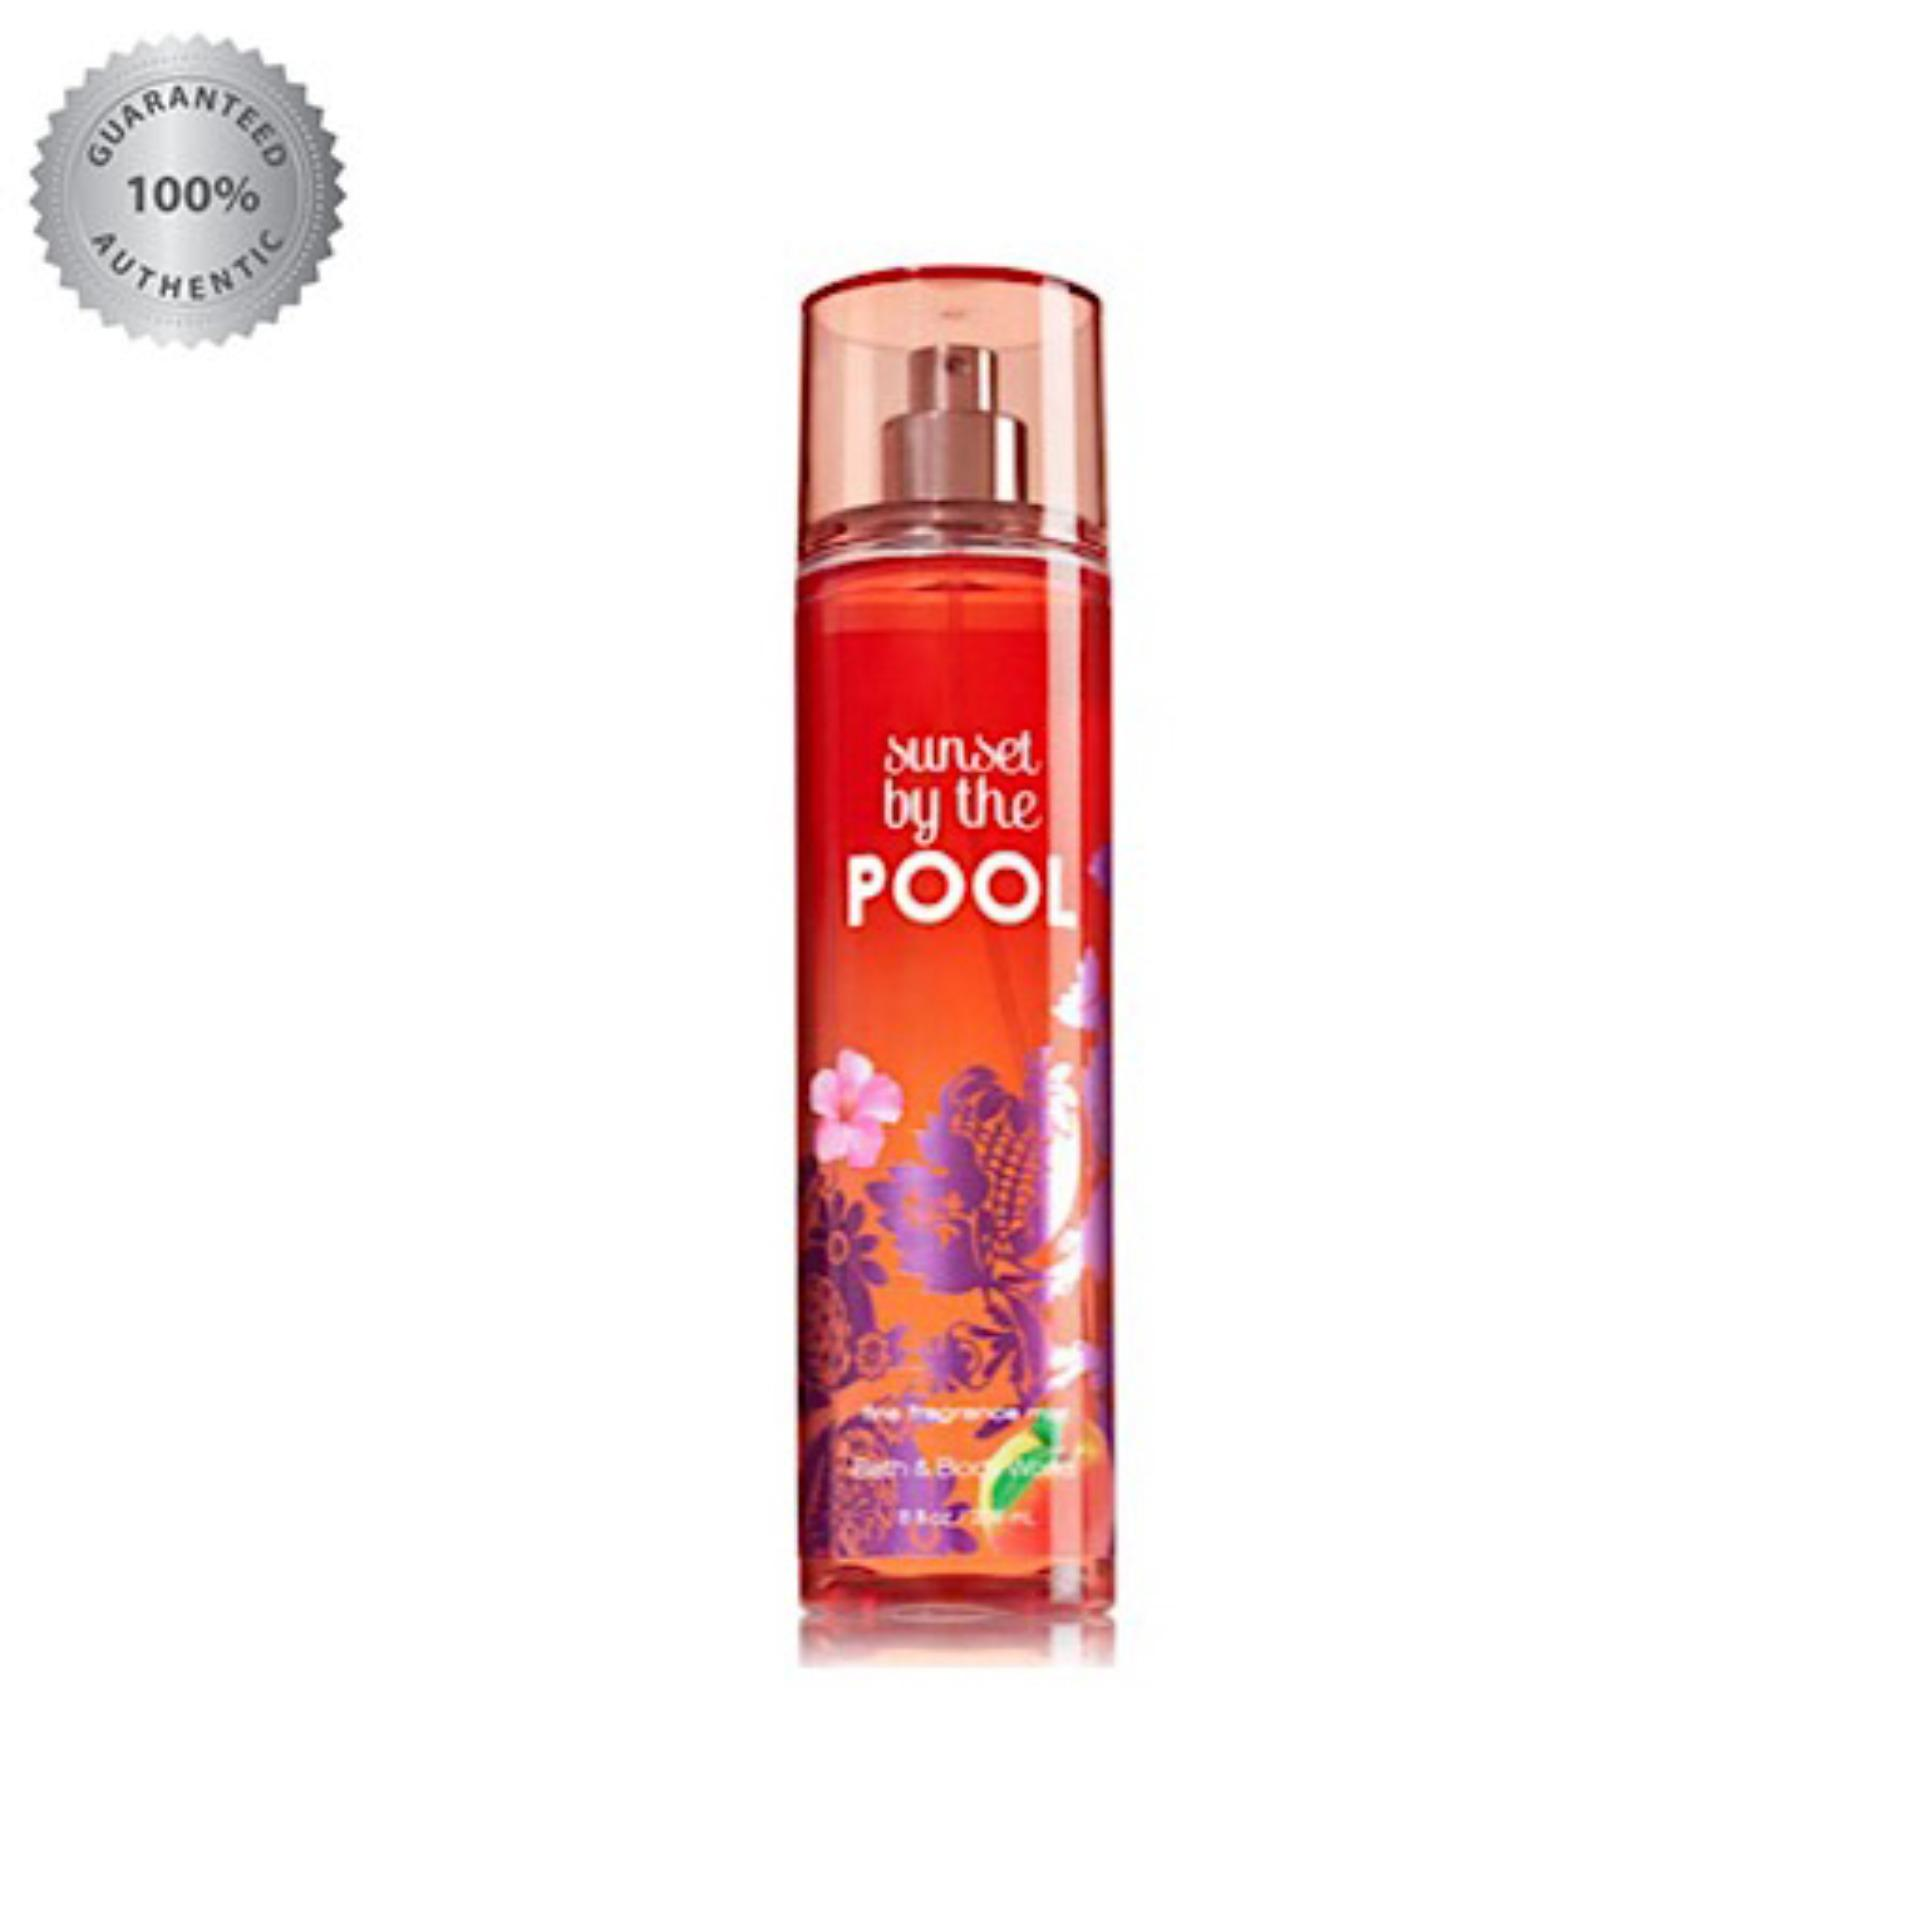 Bath and Body Works SUNSET BY THE POOL Fine Fragrance Mist 236ML